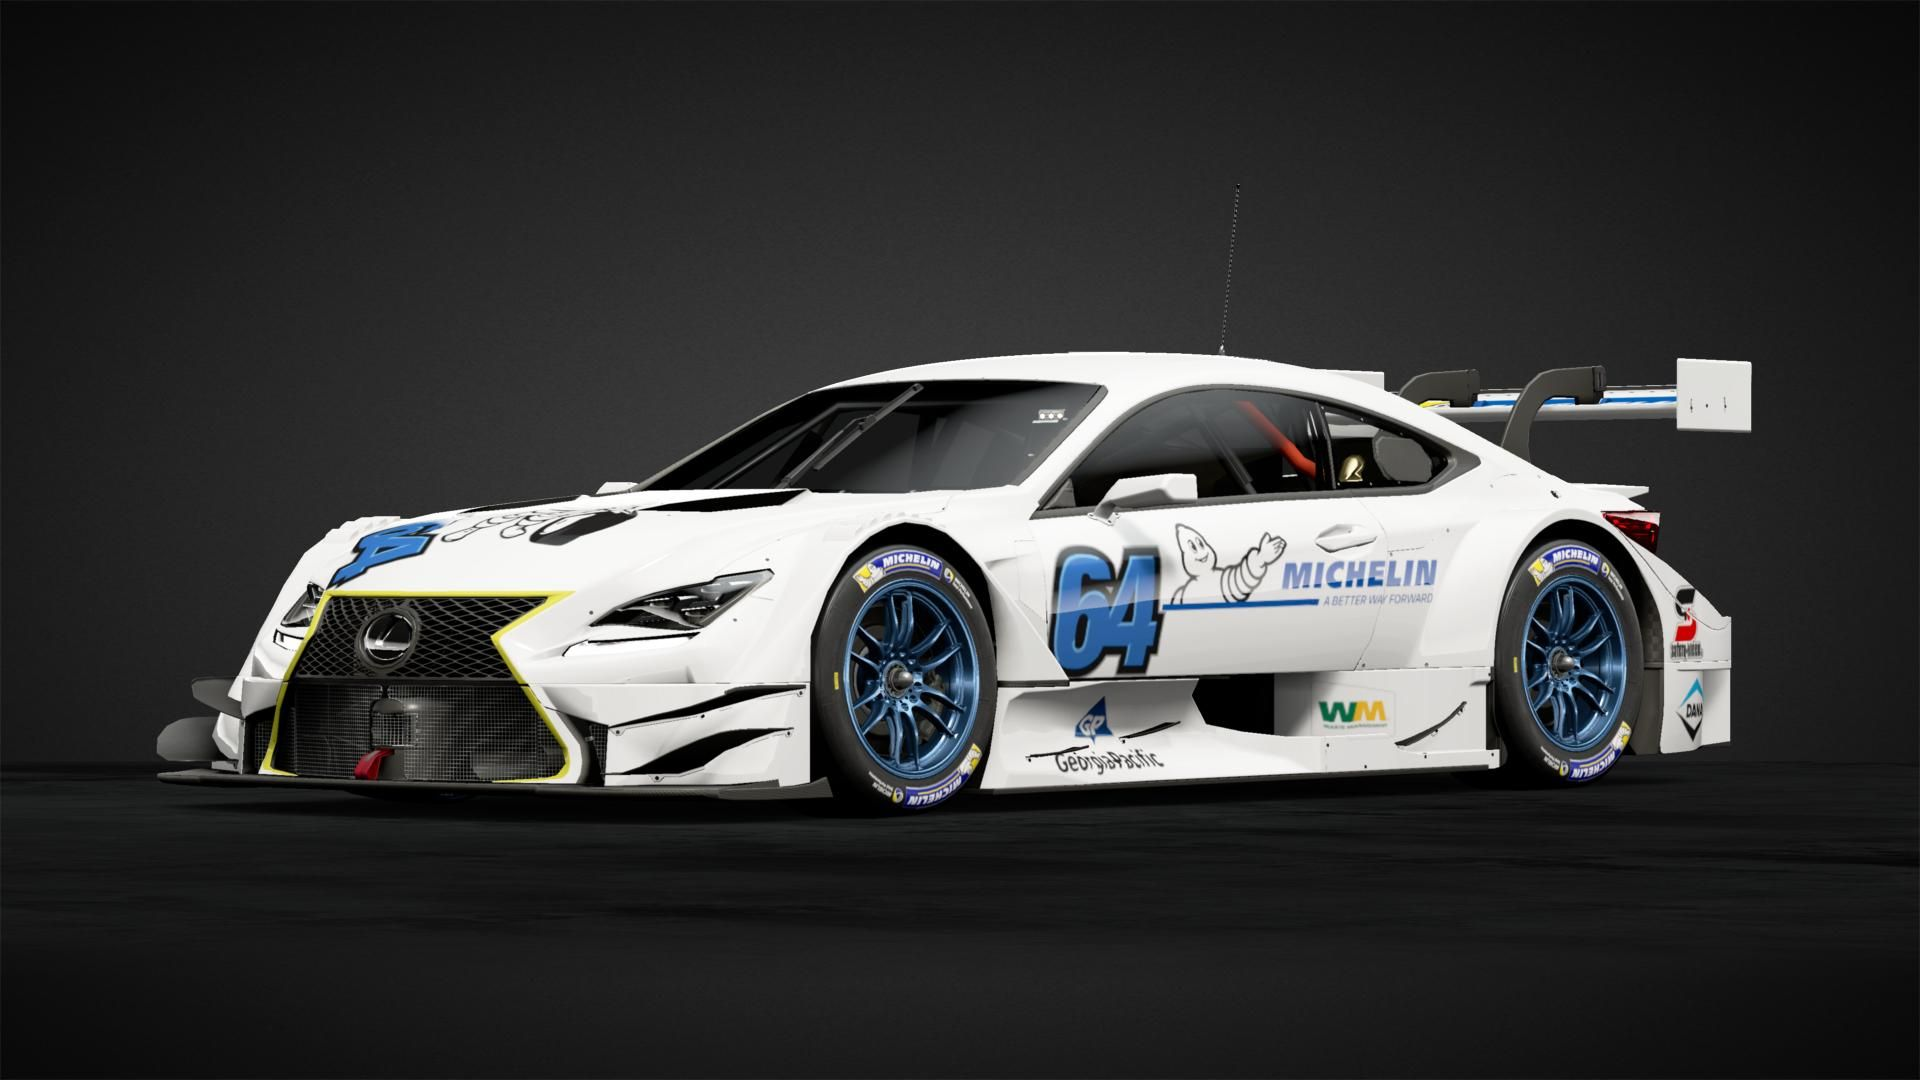 Lexus Super Gt Car Livery By Yatkinson64 Community Gran Turismo Sport Gt Cars Lexus Car